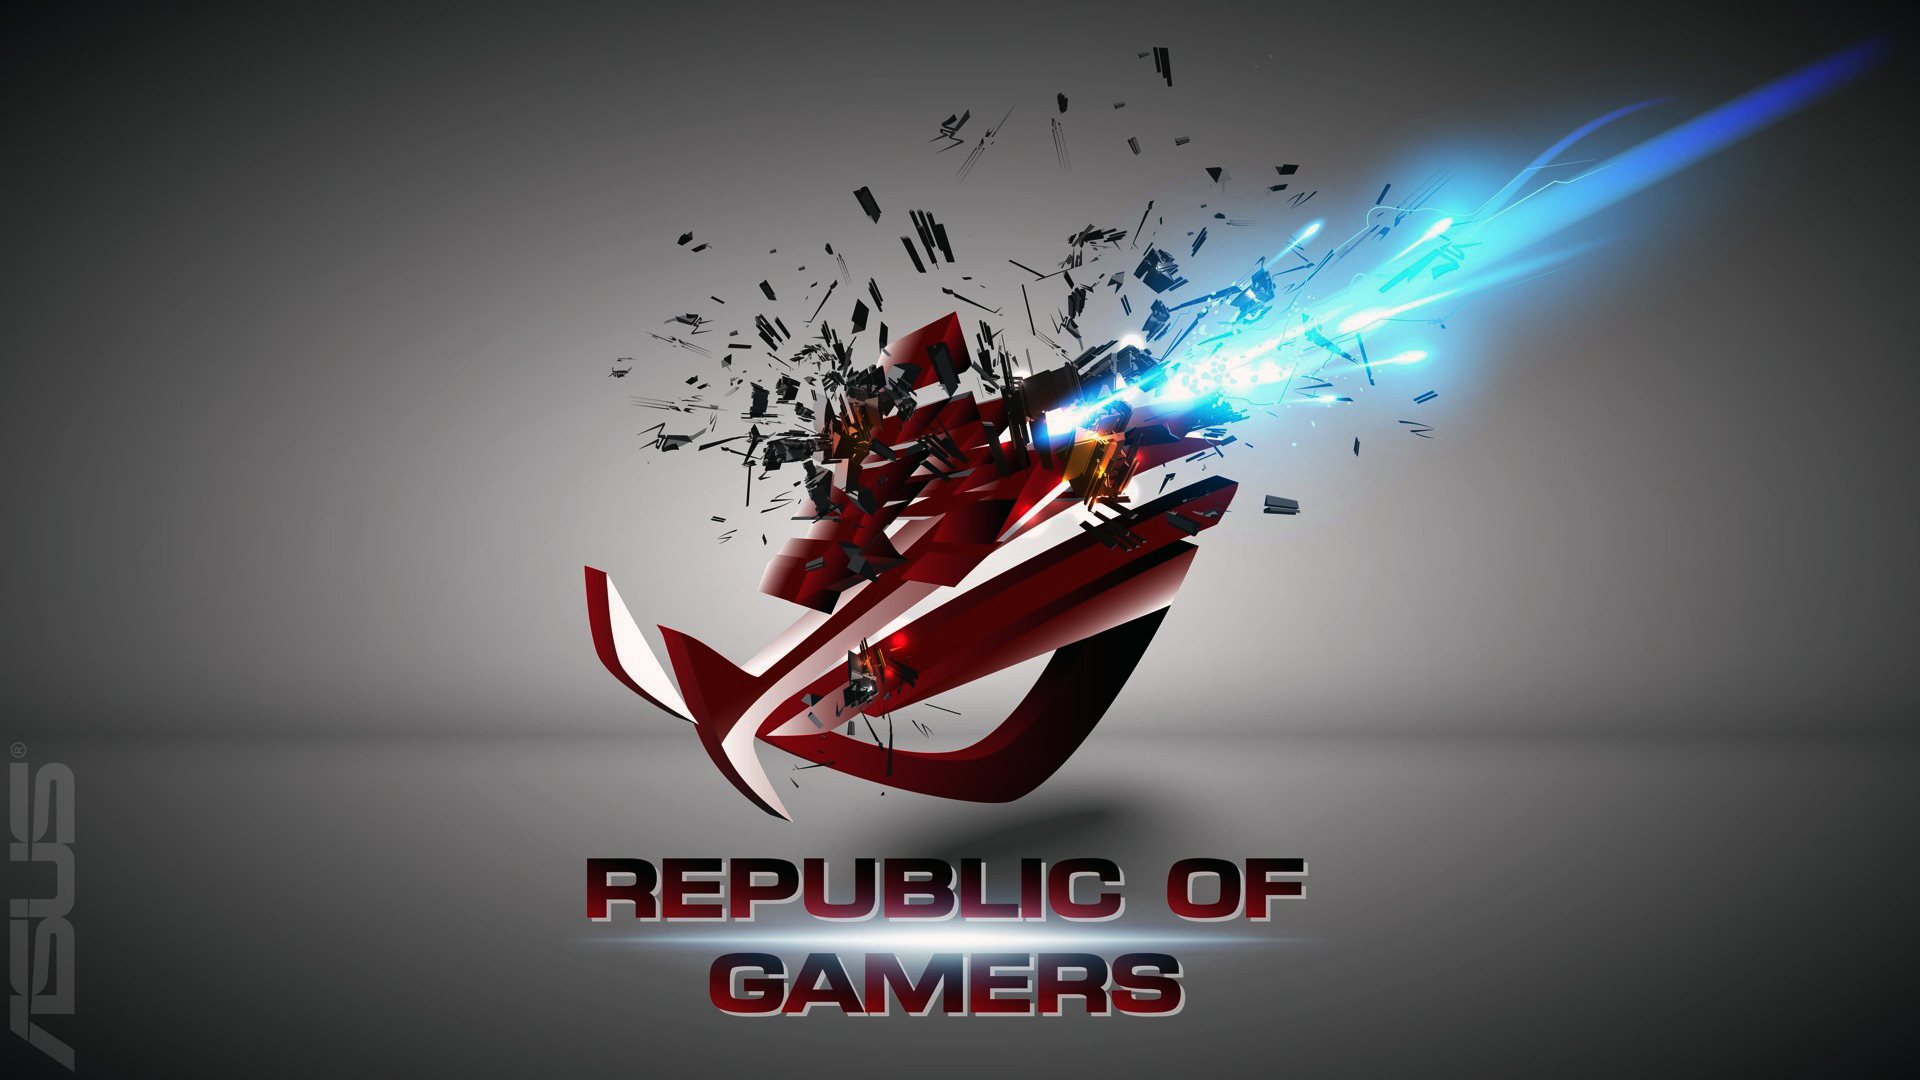 asus rog republic of gamers logo shattered explosion hd 1920x1080 1920x1080